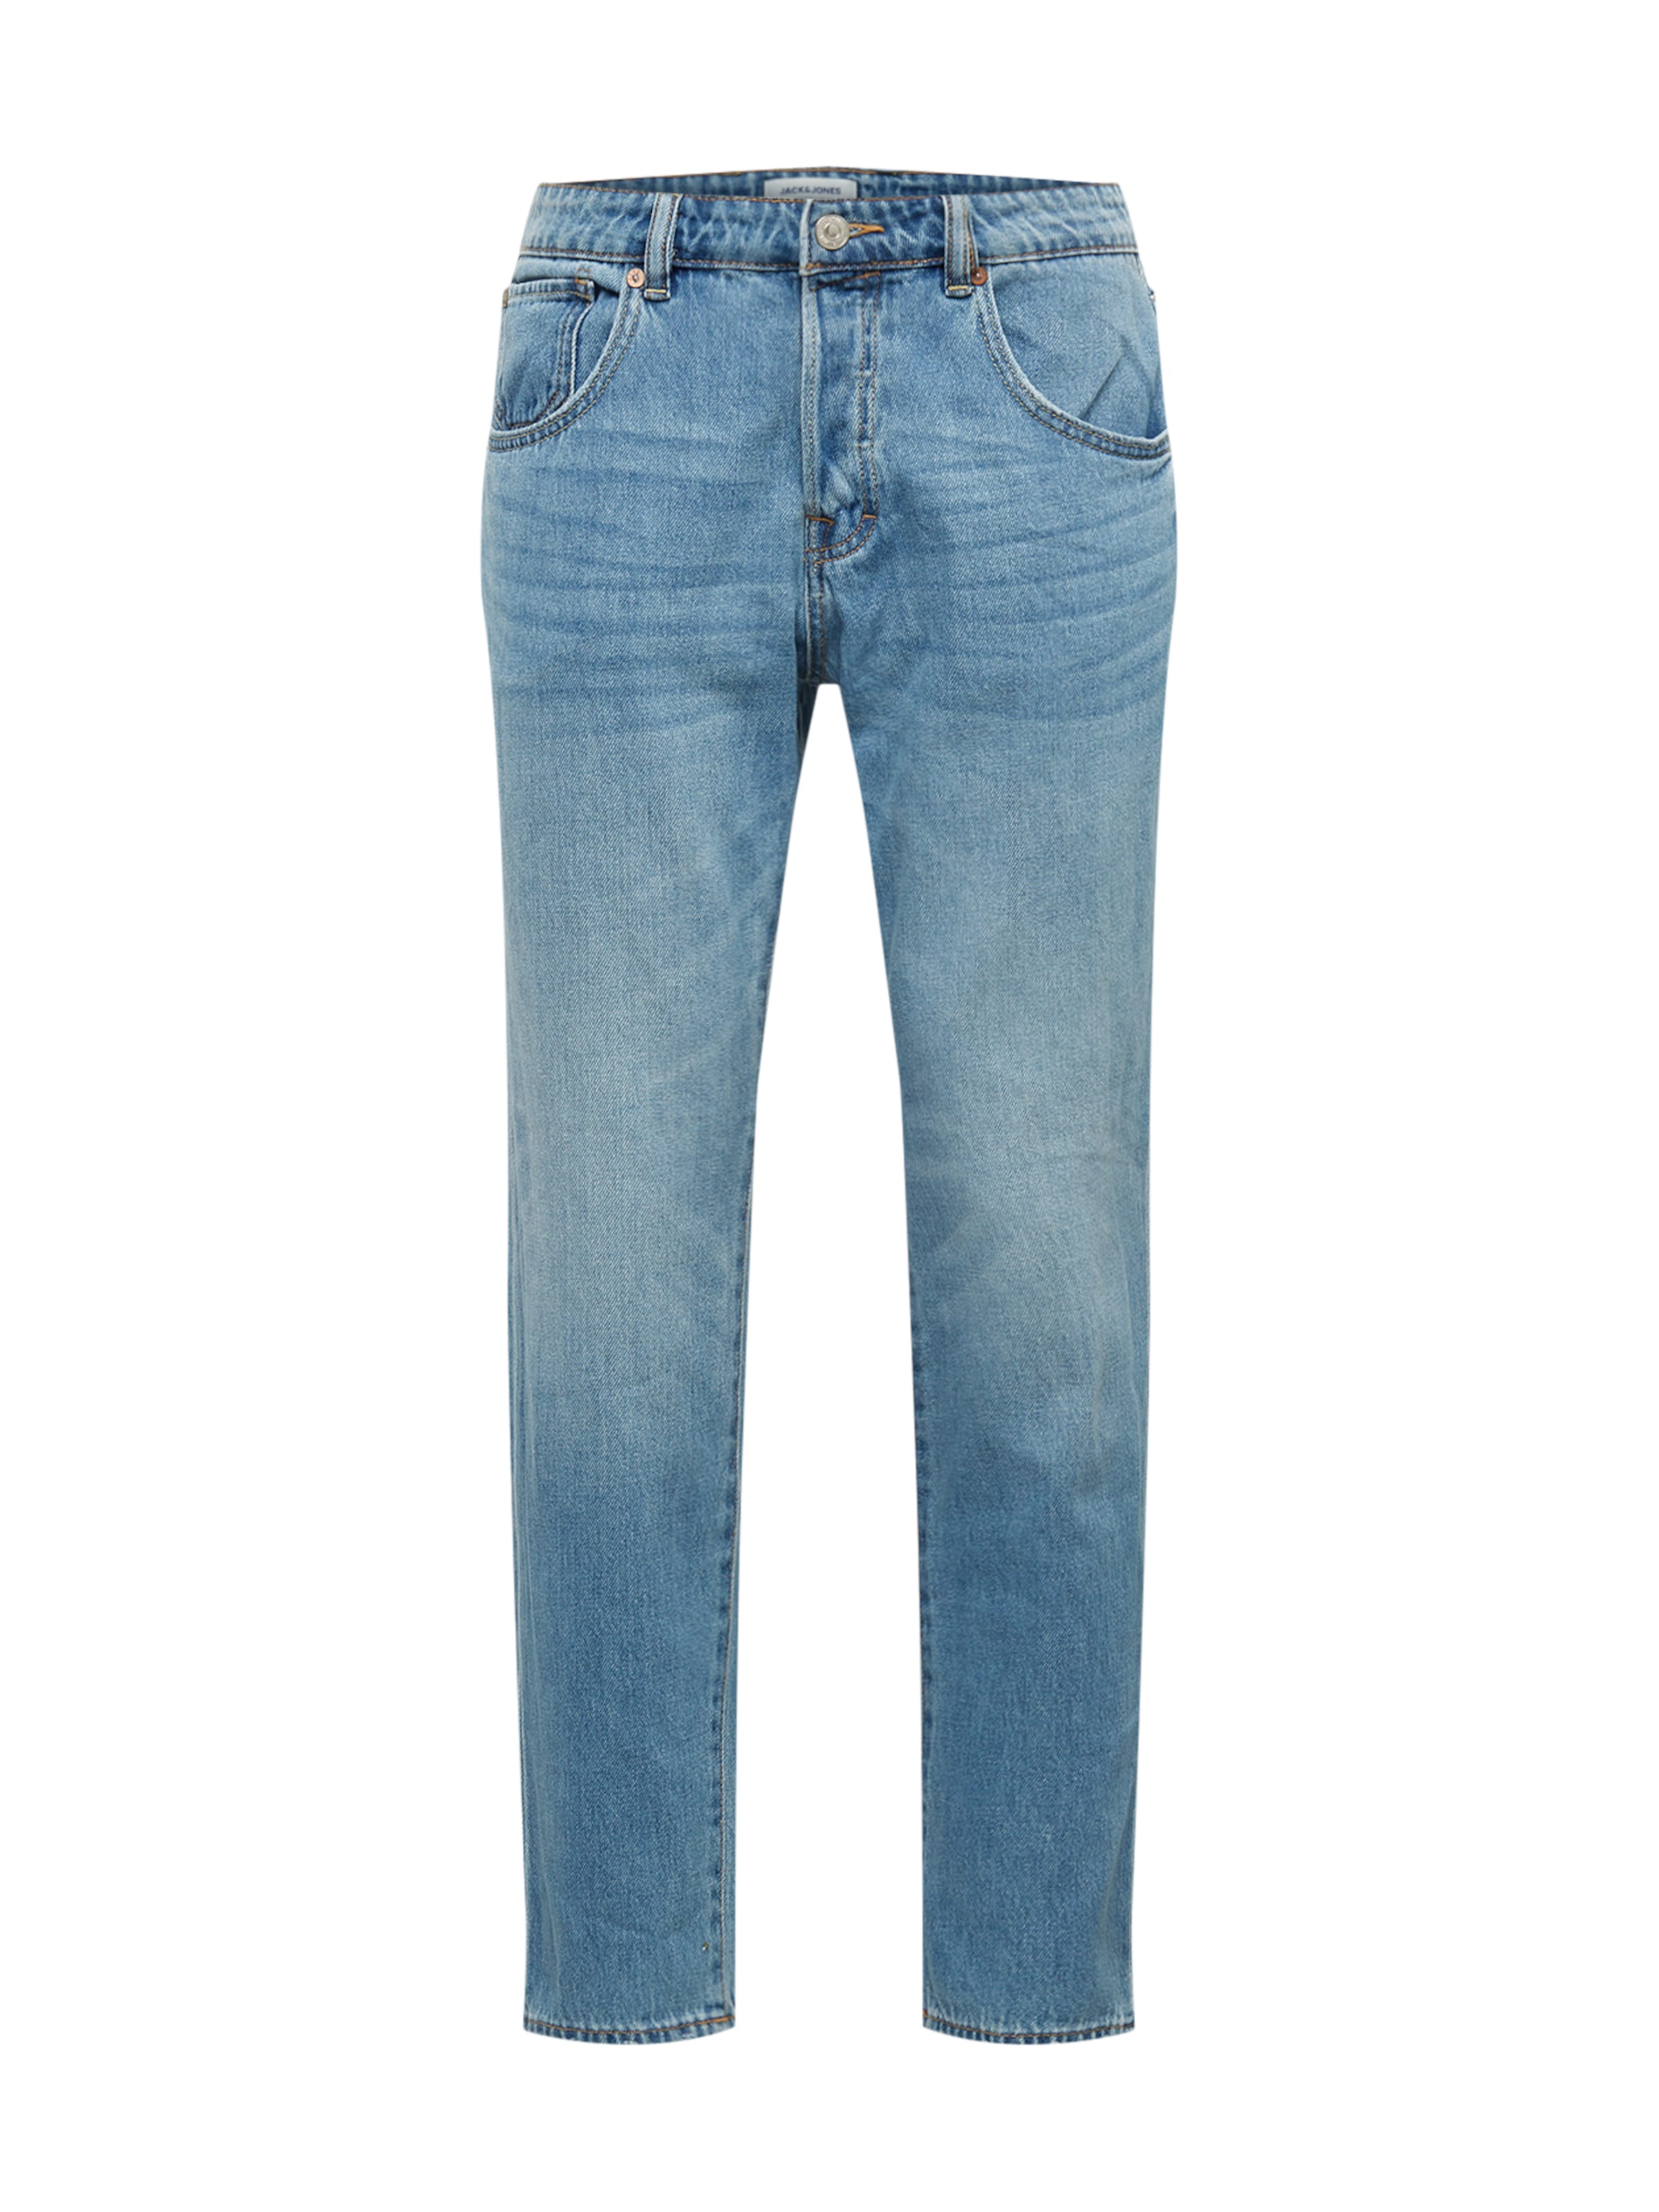 Jones Denim Jackamp; 'frank' Bleu Jean En vmONn08w